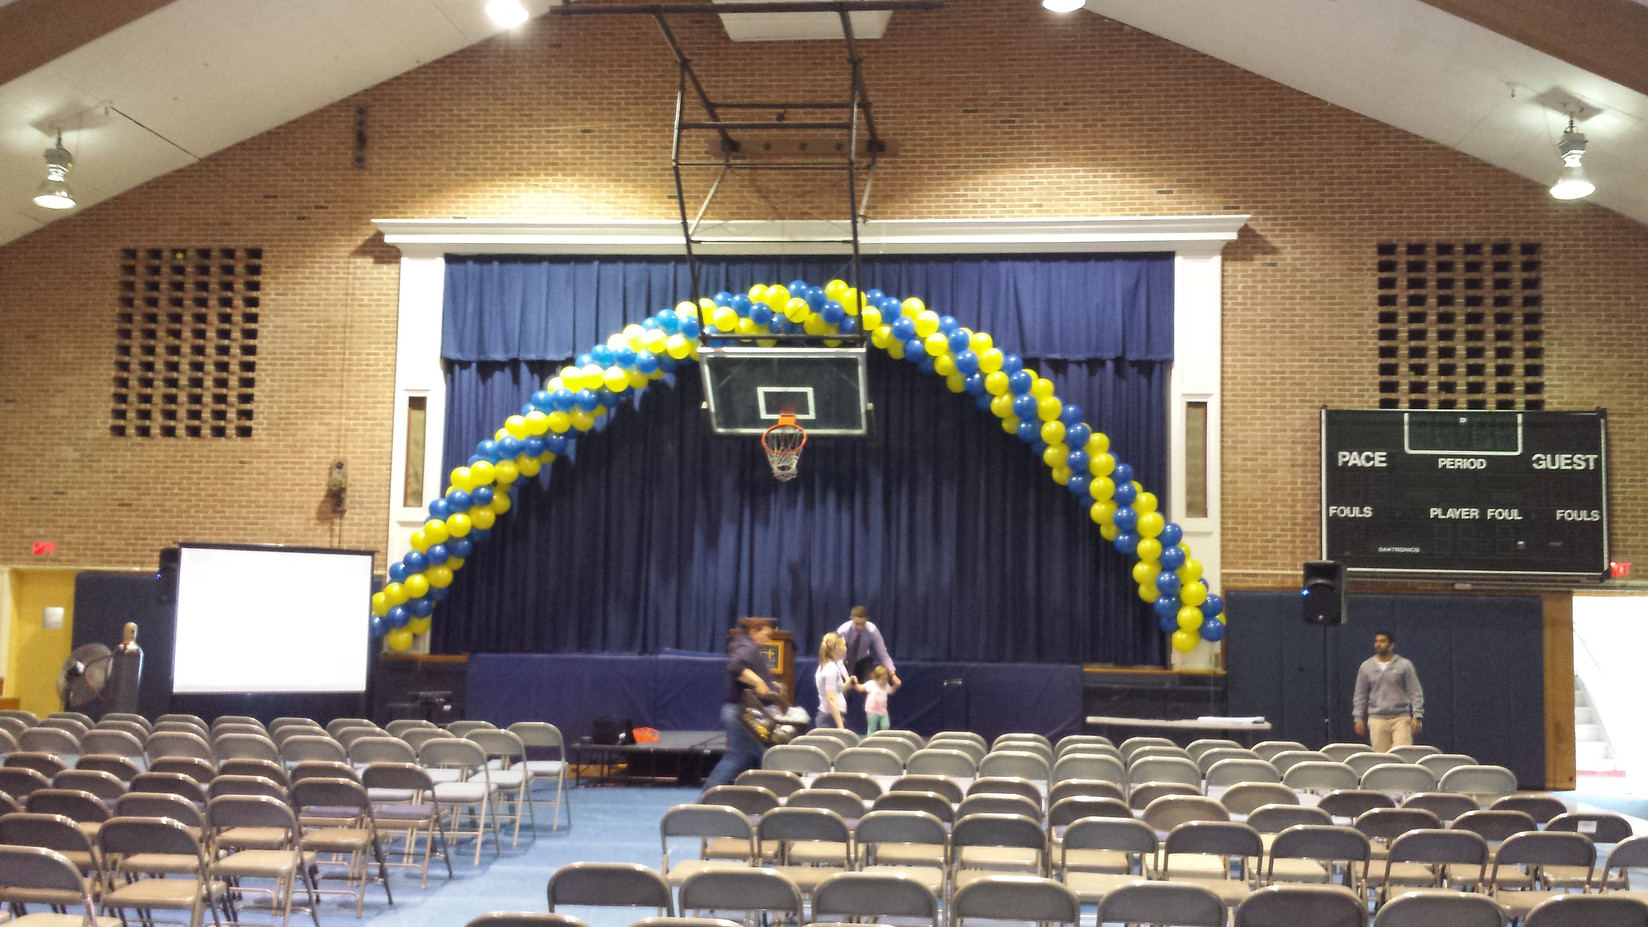 Balloon-Archways-For-Event.jpg